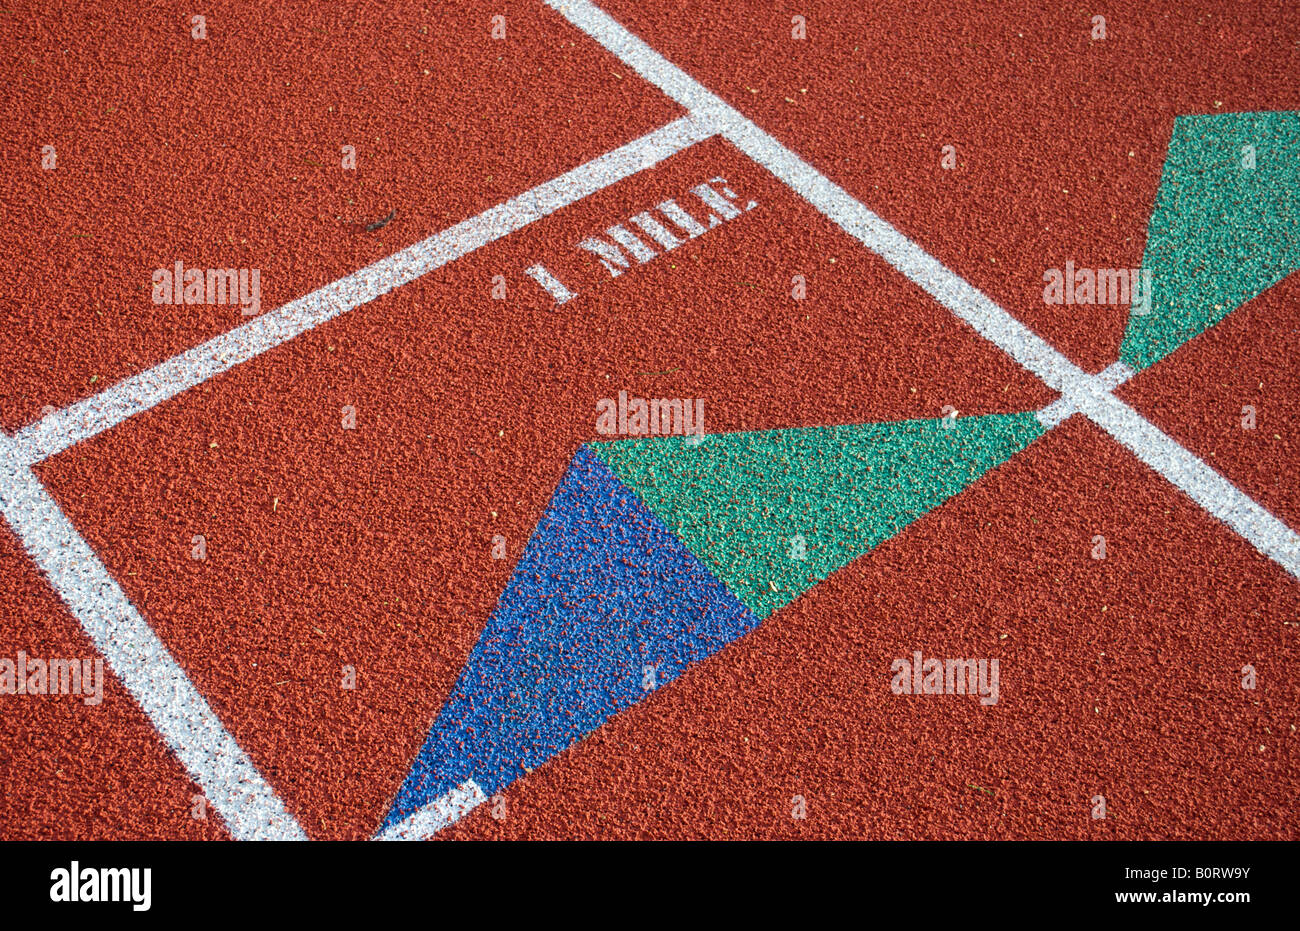 Track and field 1 mile marker Stock Photo, Royalty Free Image ...